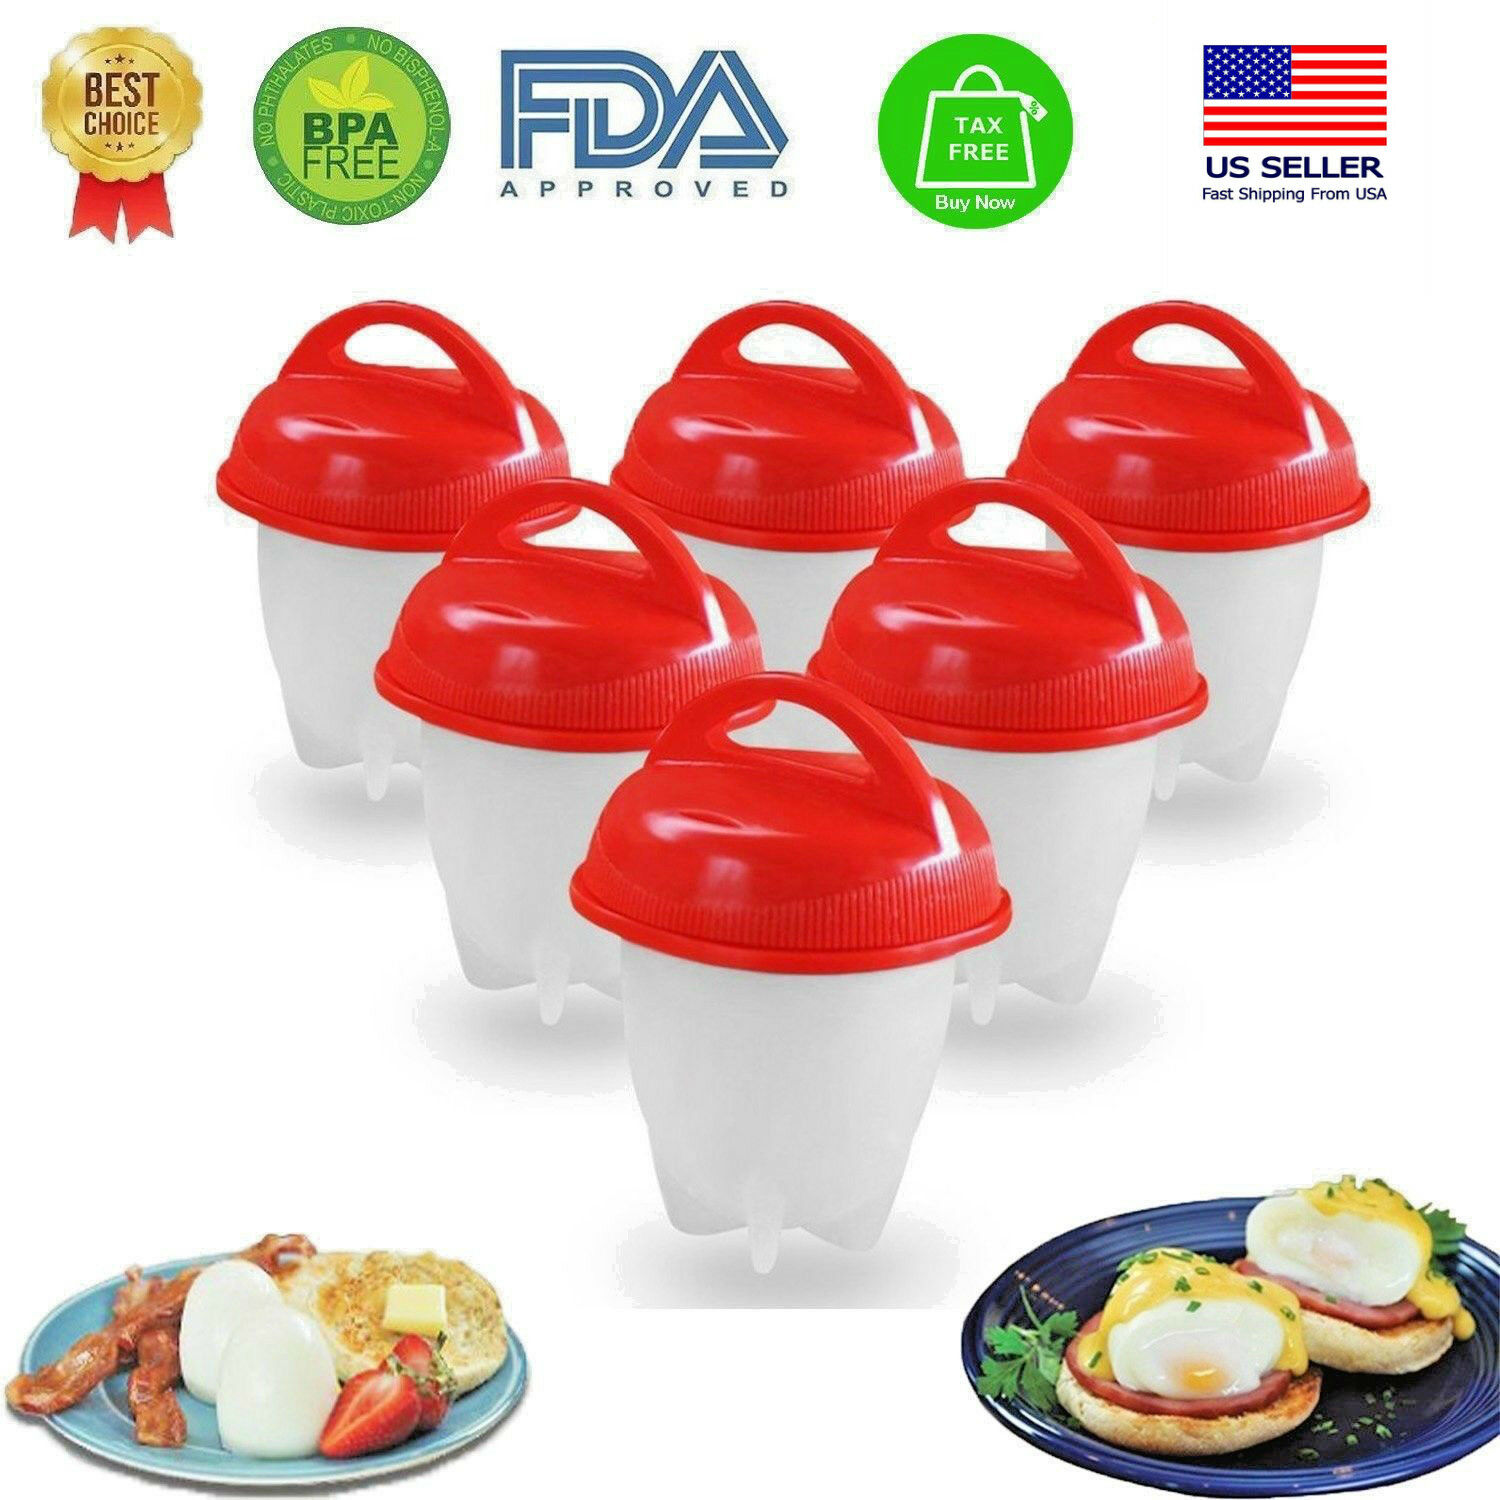 Egg Cooker Hard & Soft Boiled Eggs without Shell 1-12 pcs No